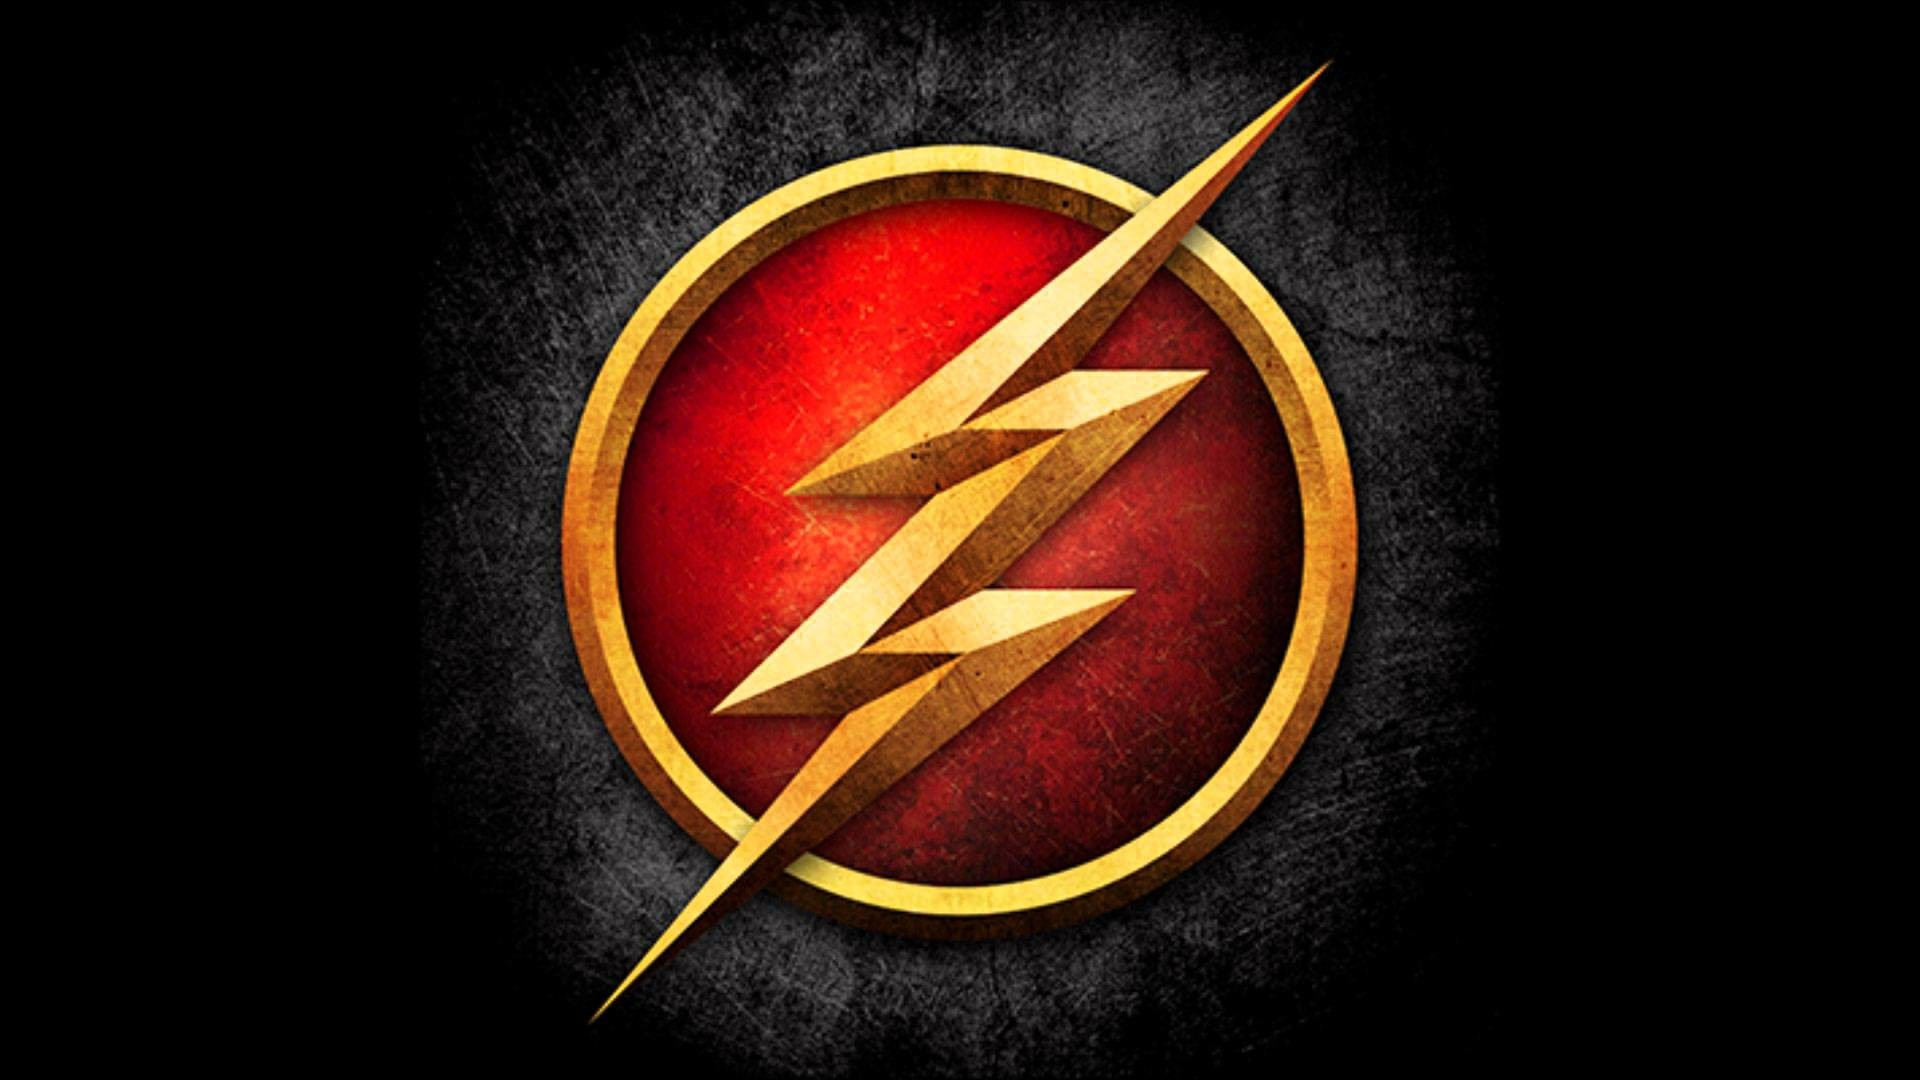 Justice League The Flash Wallpaper Mobile by darkfailure on DeviantArt